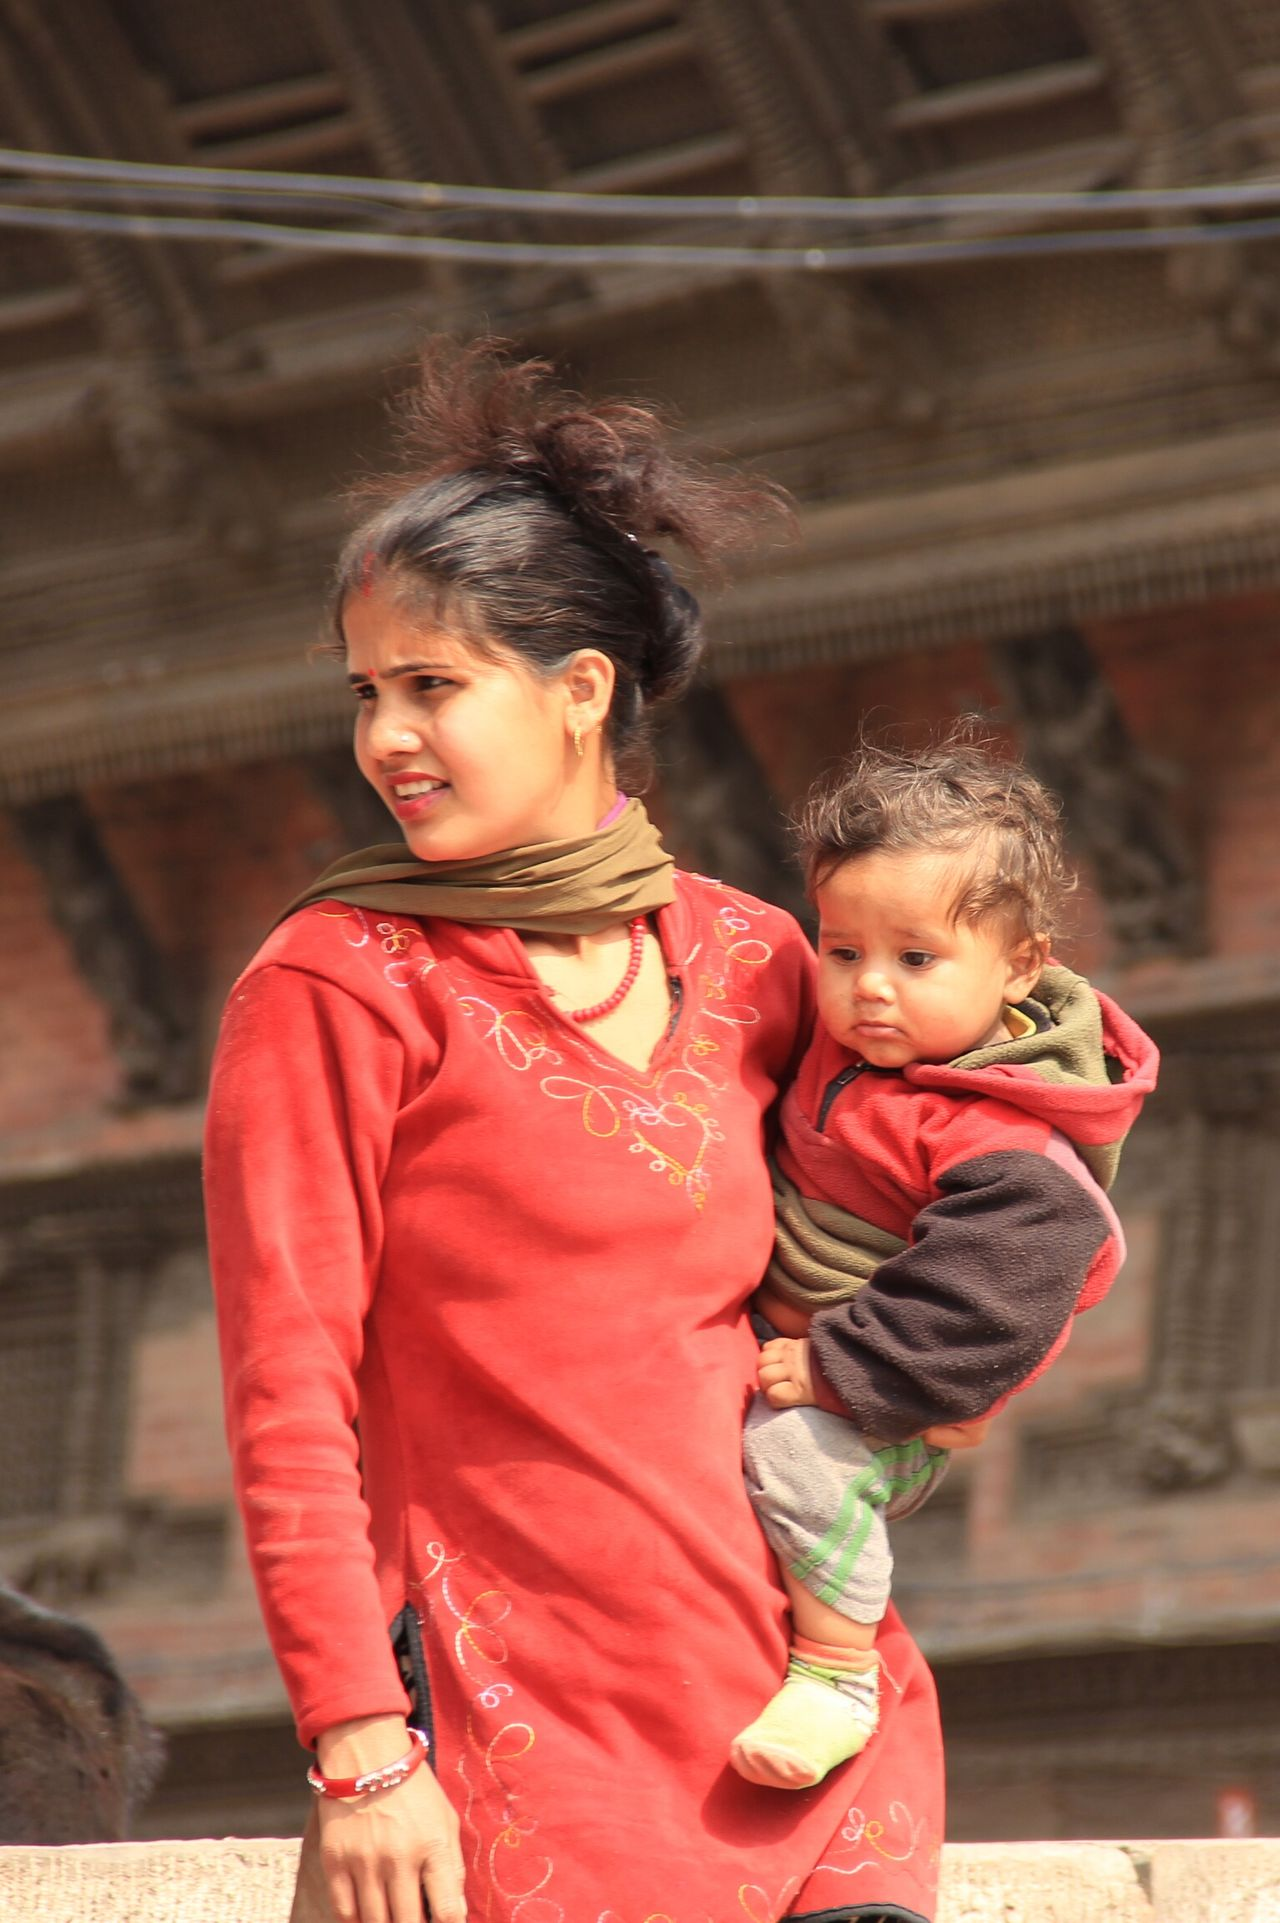 Mother And Child Beautiful Woman Traditional Clothing Nepalipeople😊 nepal travel Women Around The World